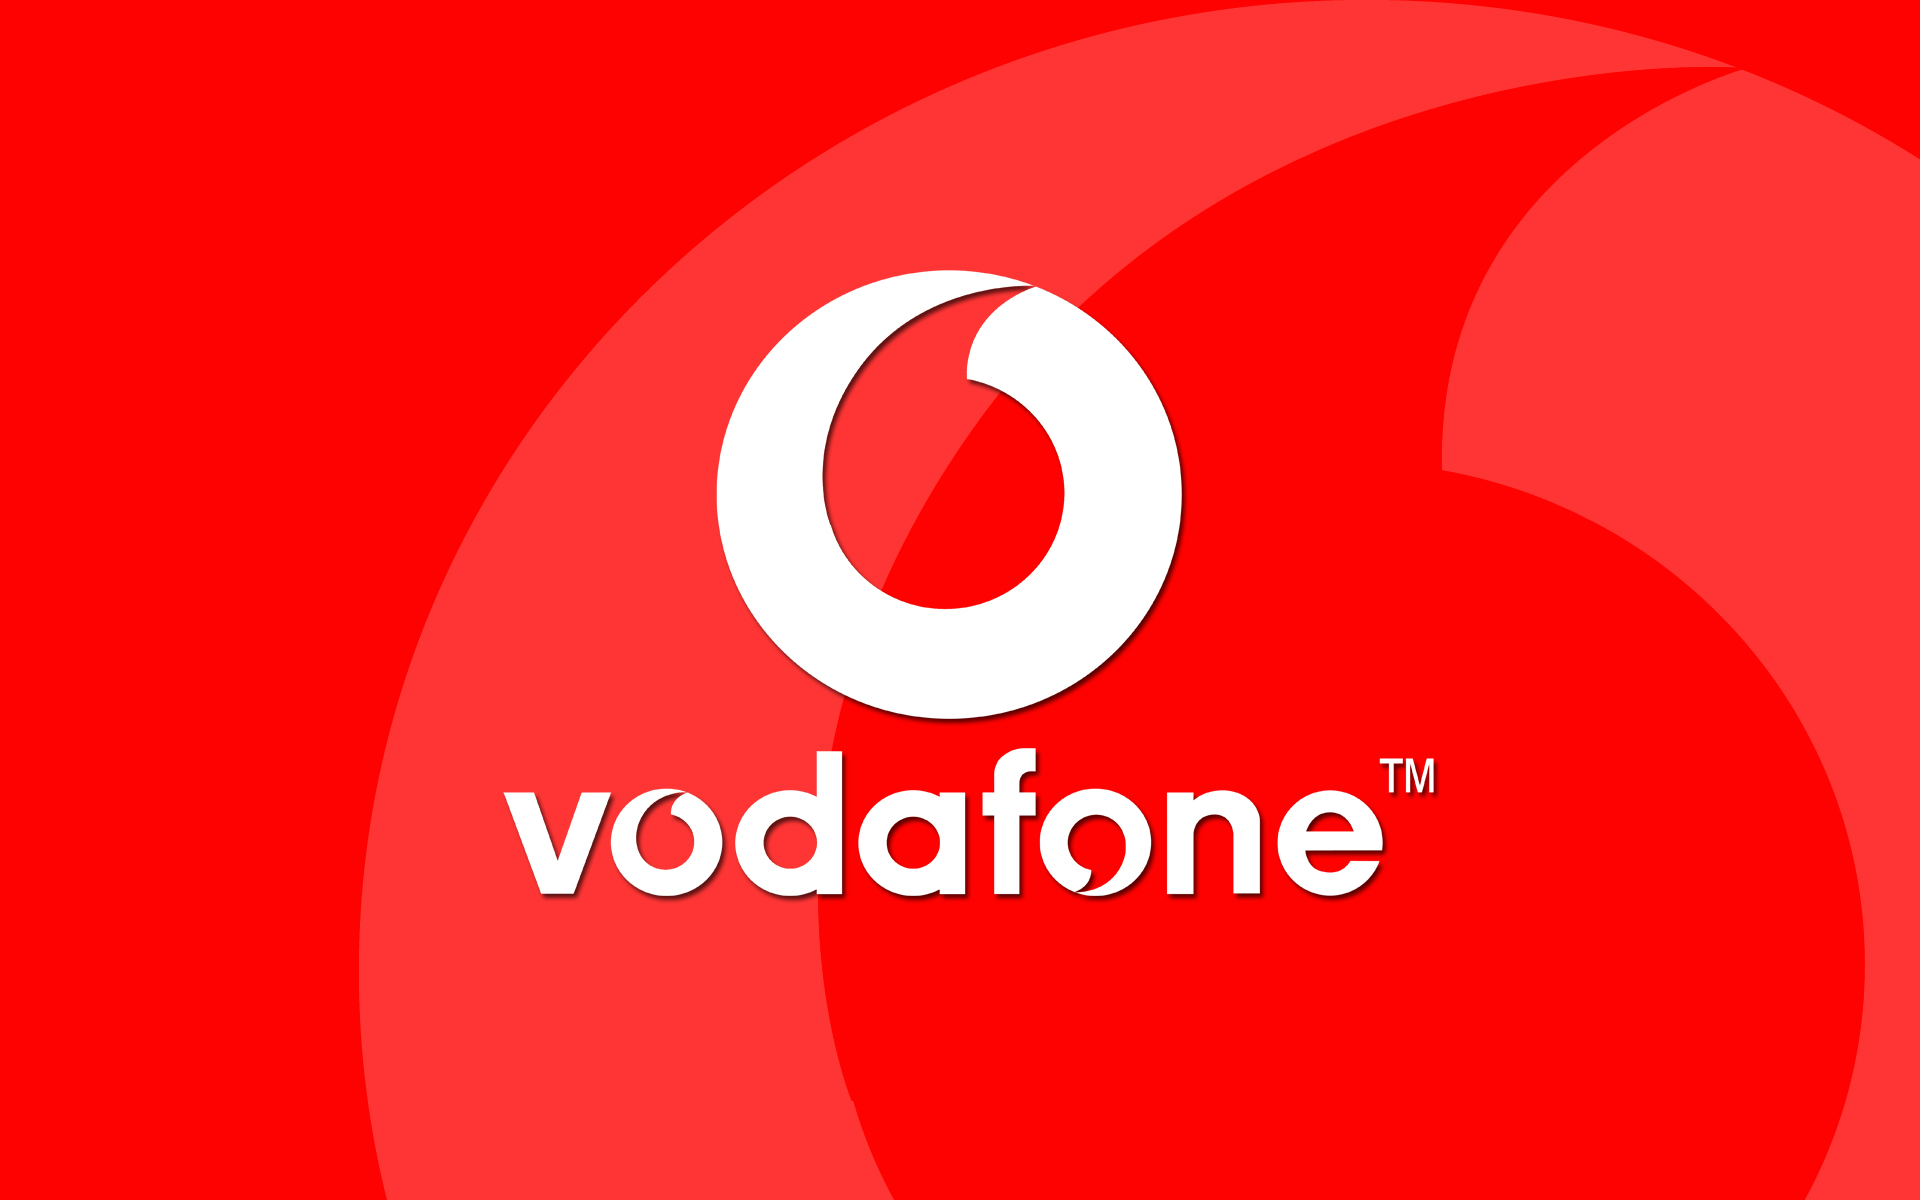 Vodafone Wins Rs 20,000 Crore Retrospective Tax Case Against India Govt In International Arbitration